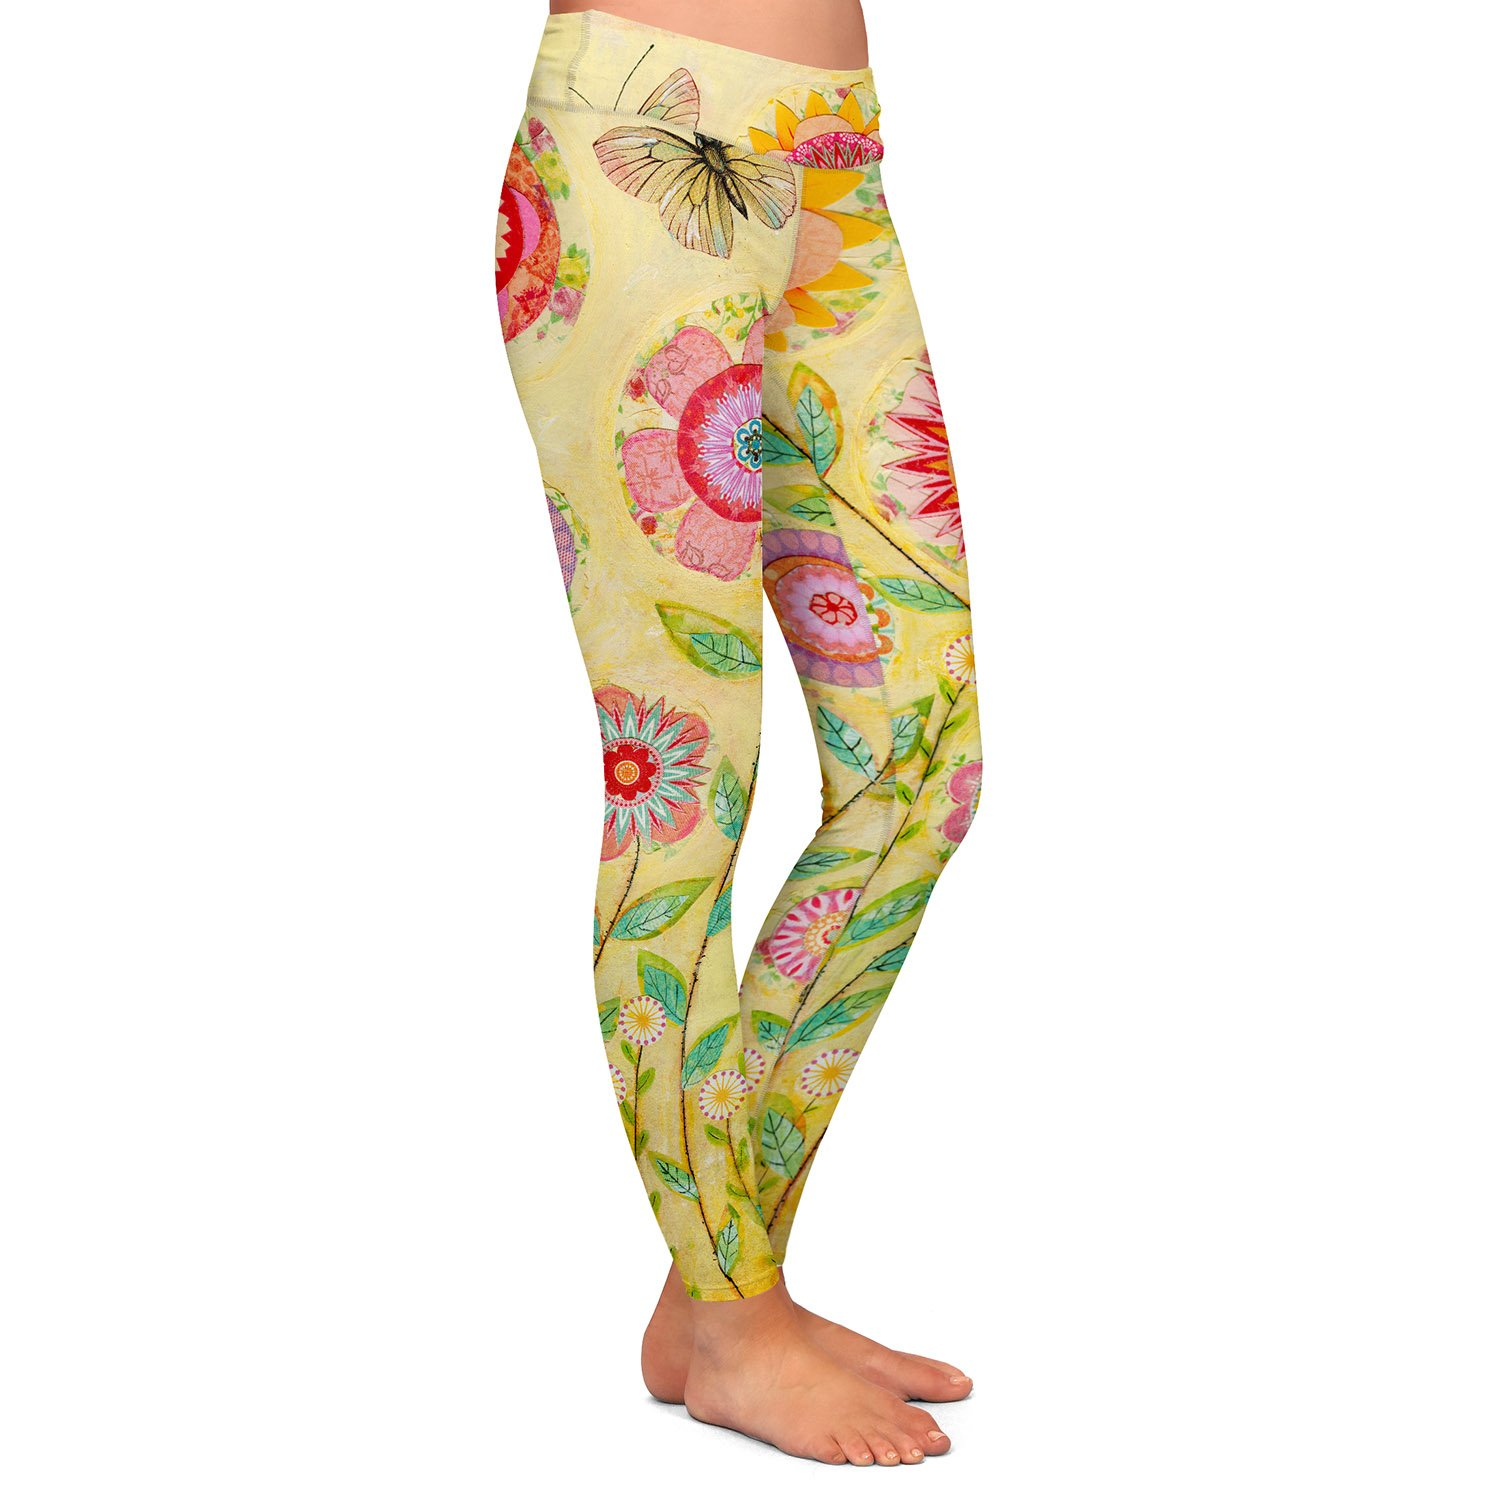 Athletic Yoga Leggings from DiaNoche Designs by Sascalia July Flowers Butterfly